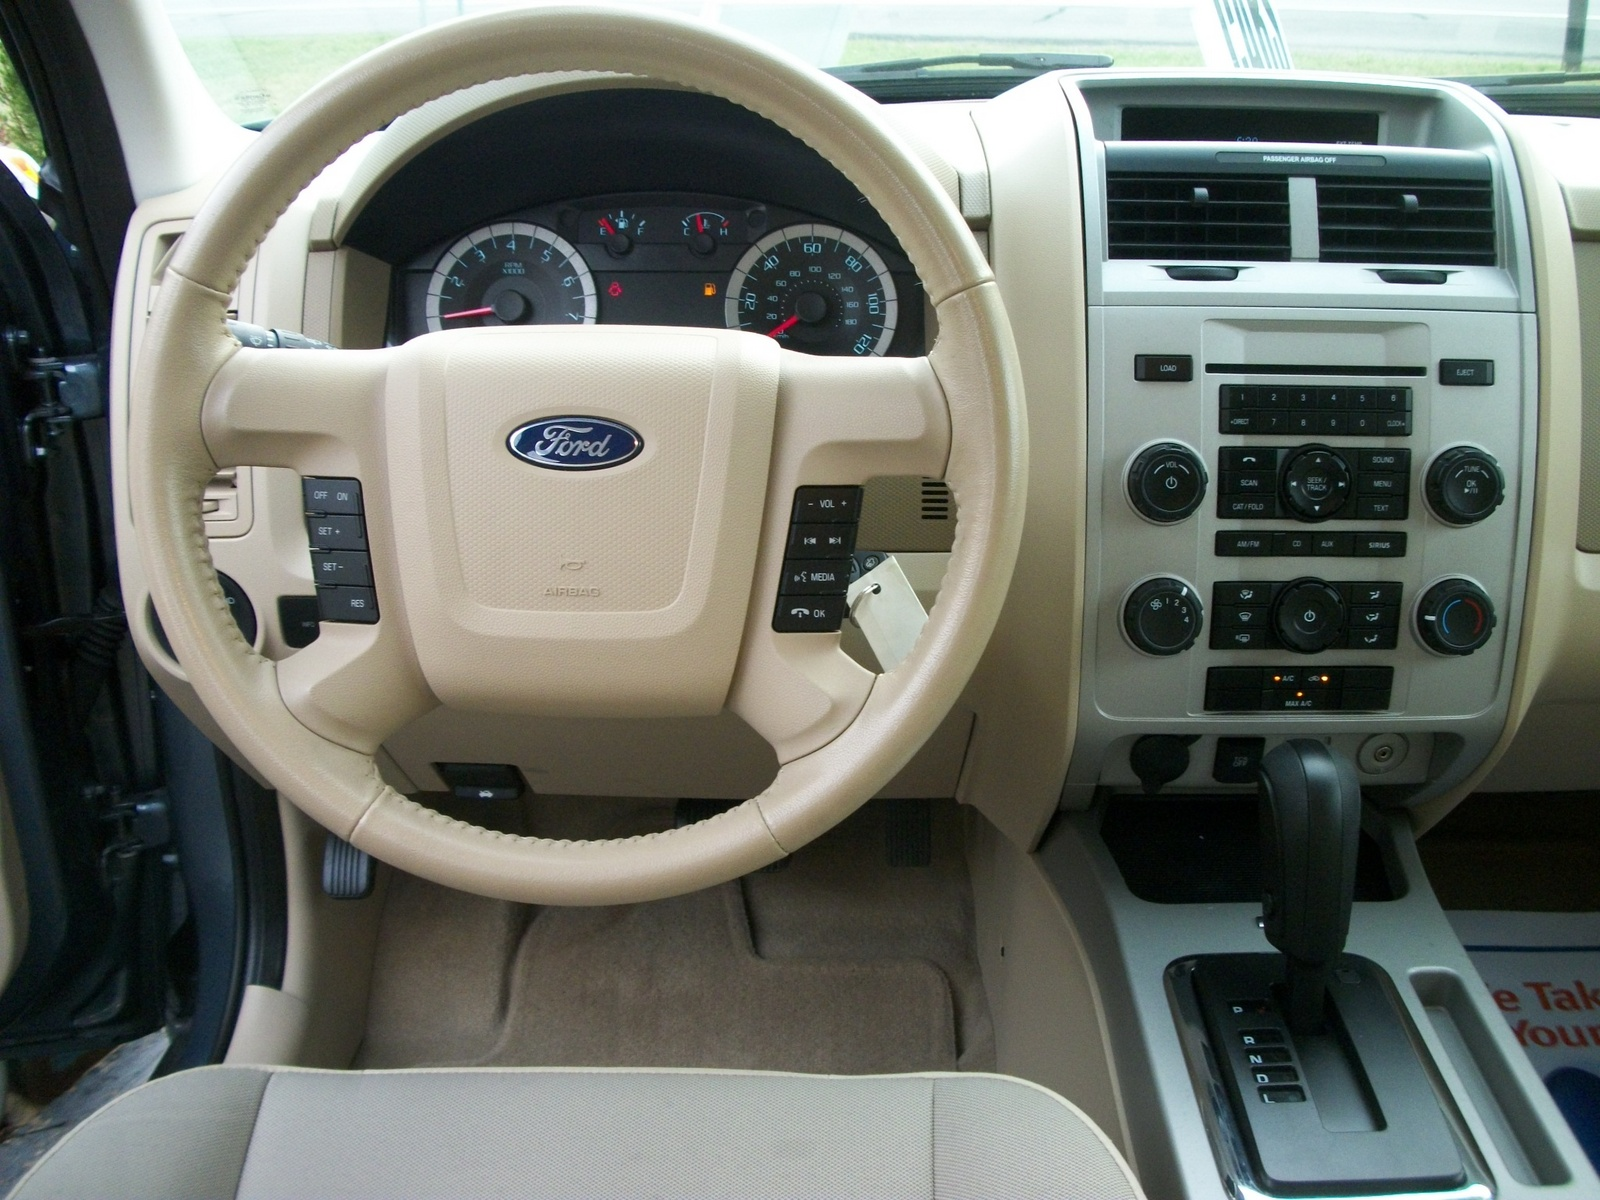 2008 ford escape xlt interior. Black Bedroom Furniture Sets. Home Design Ideas